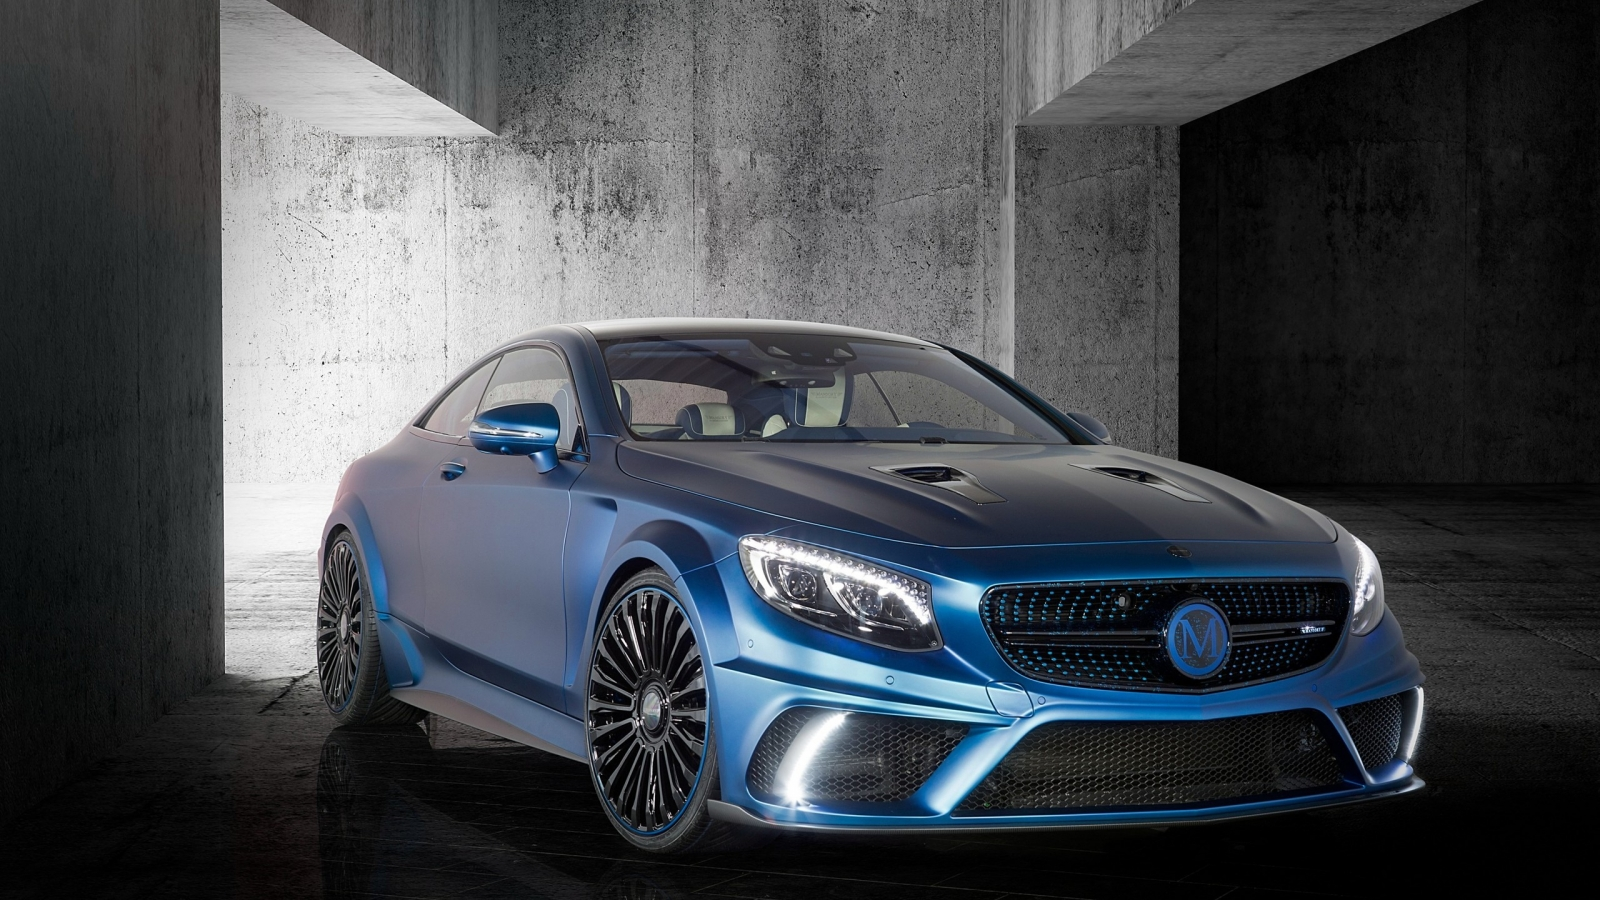 Mercedes Benz S63 AMG Brabus Diamond Edition for 1600 x 900 HDTV resolution